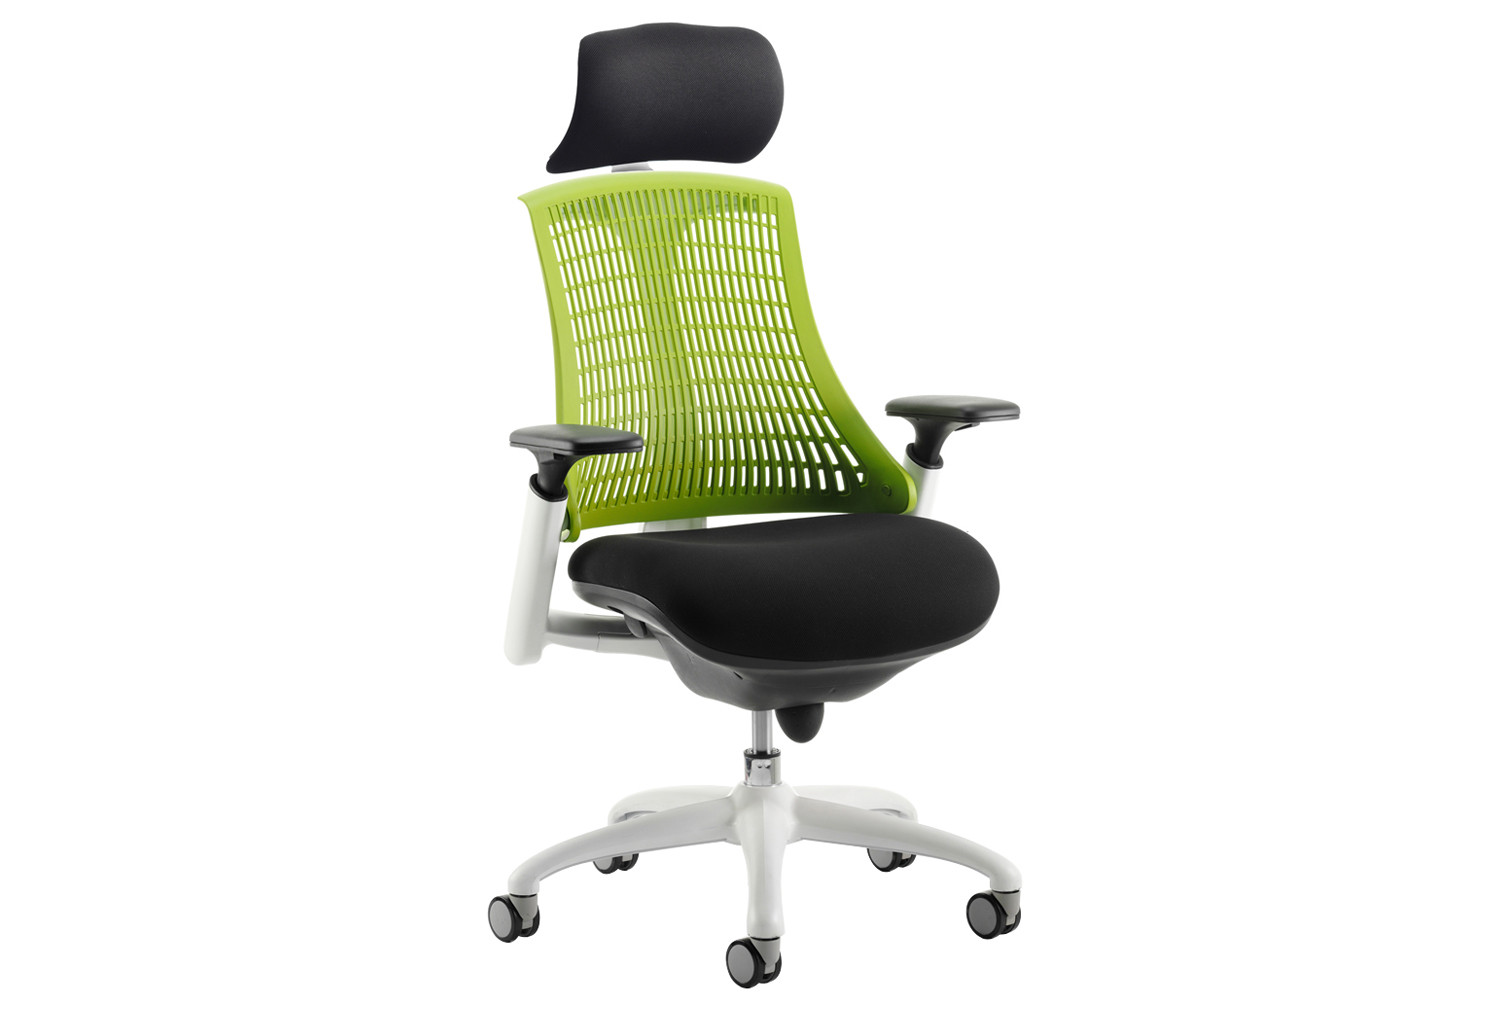 Warp white frame green mesh back operator chair with headrest